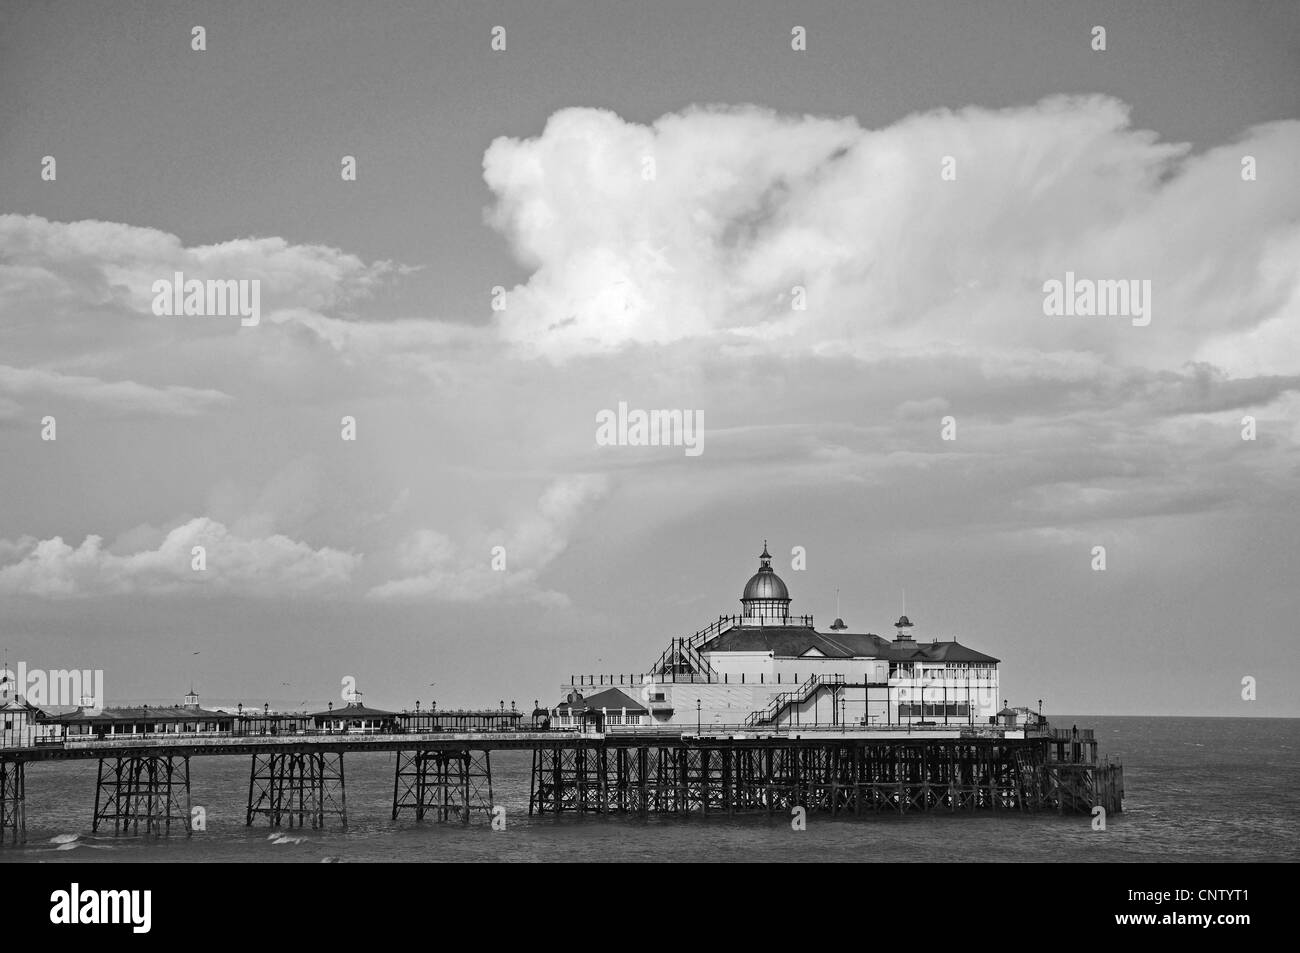 Eastbourne Pier, Eastbourne, East Sussex, England, United Kingdom - Stock Image